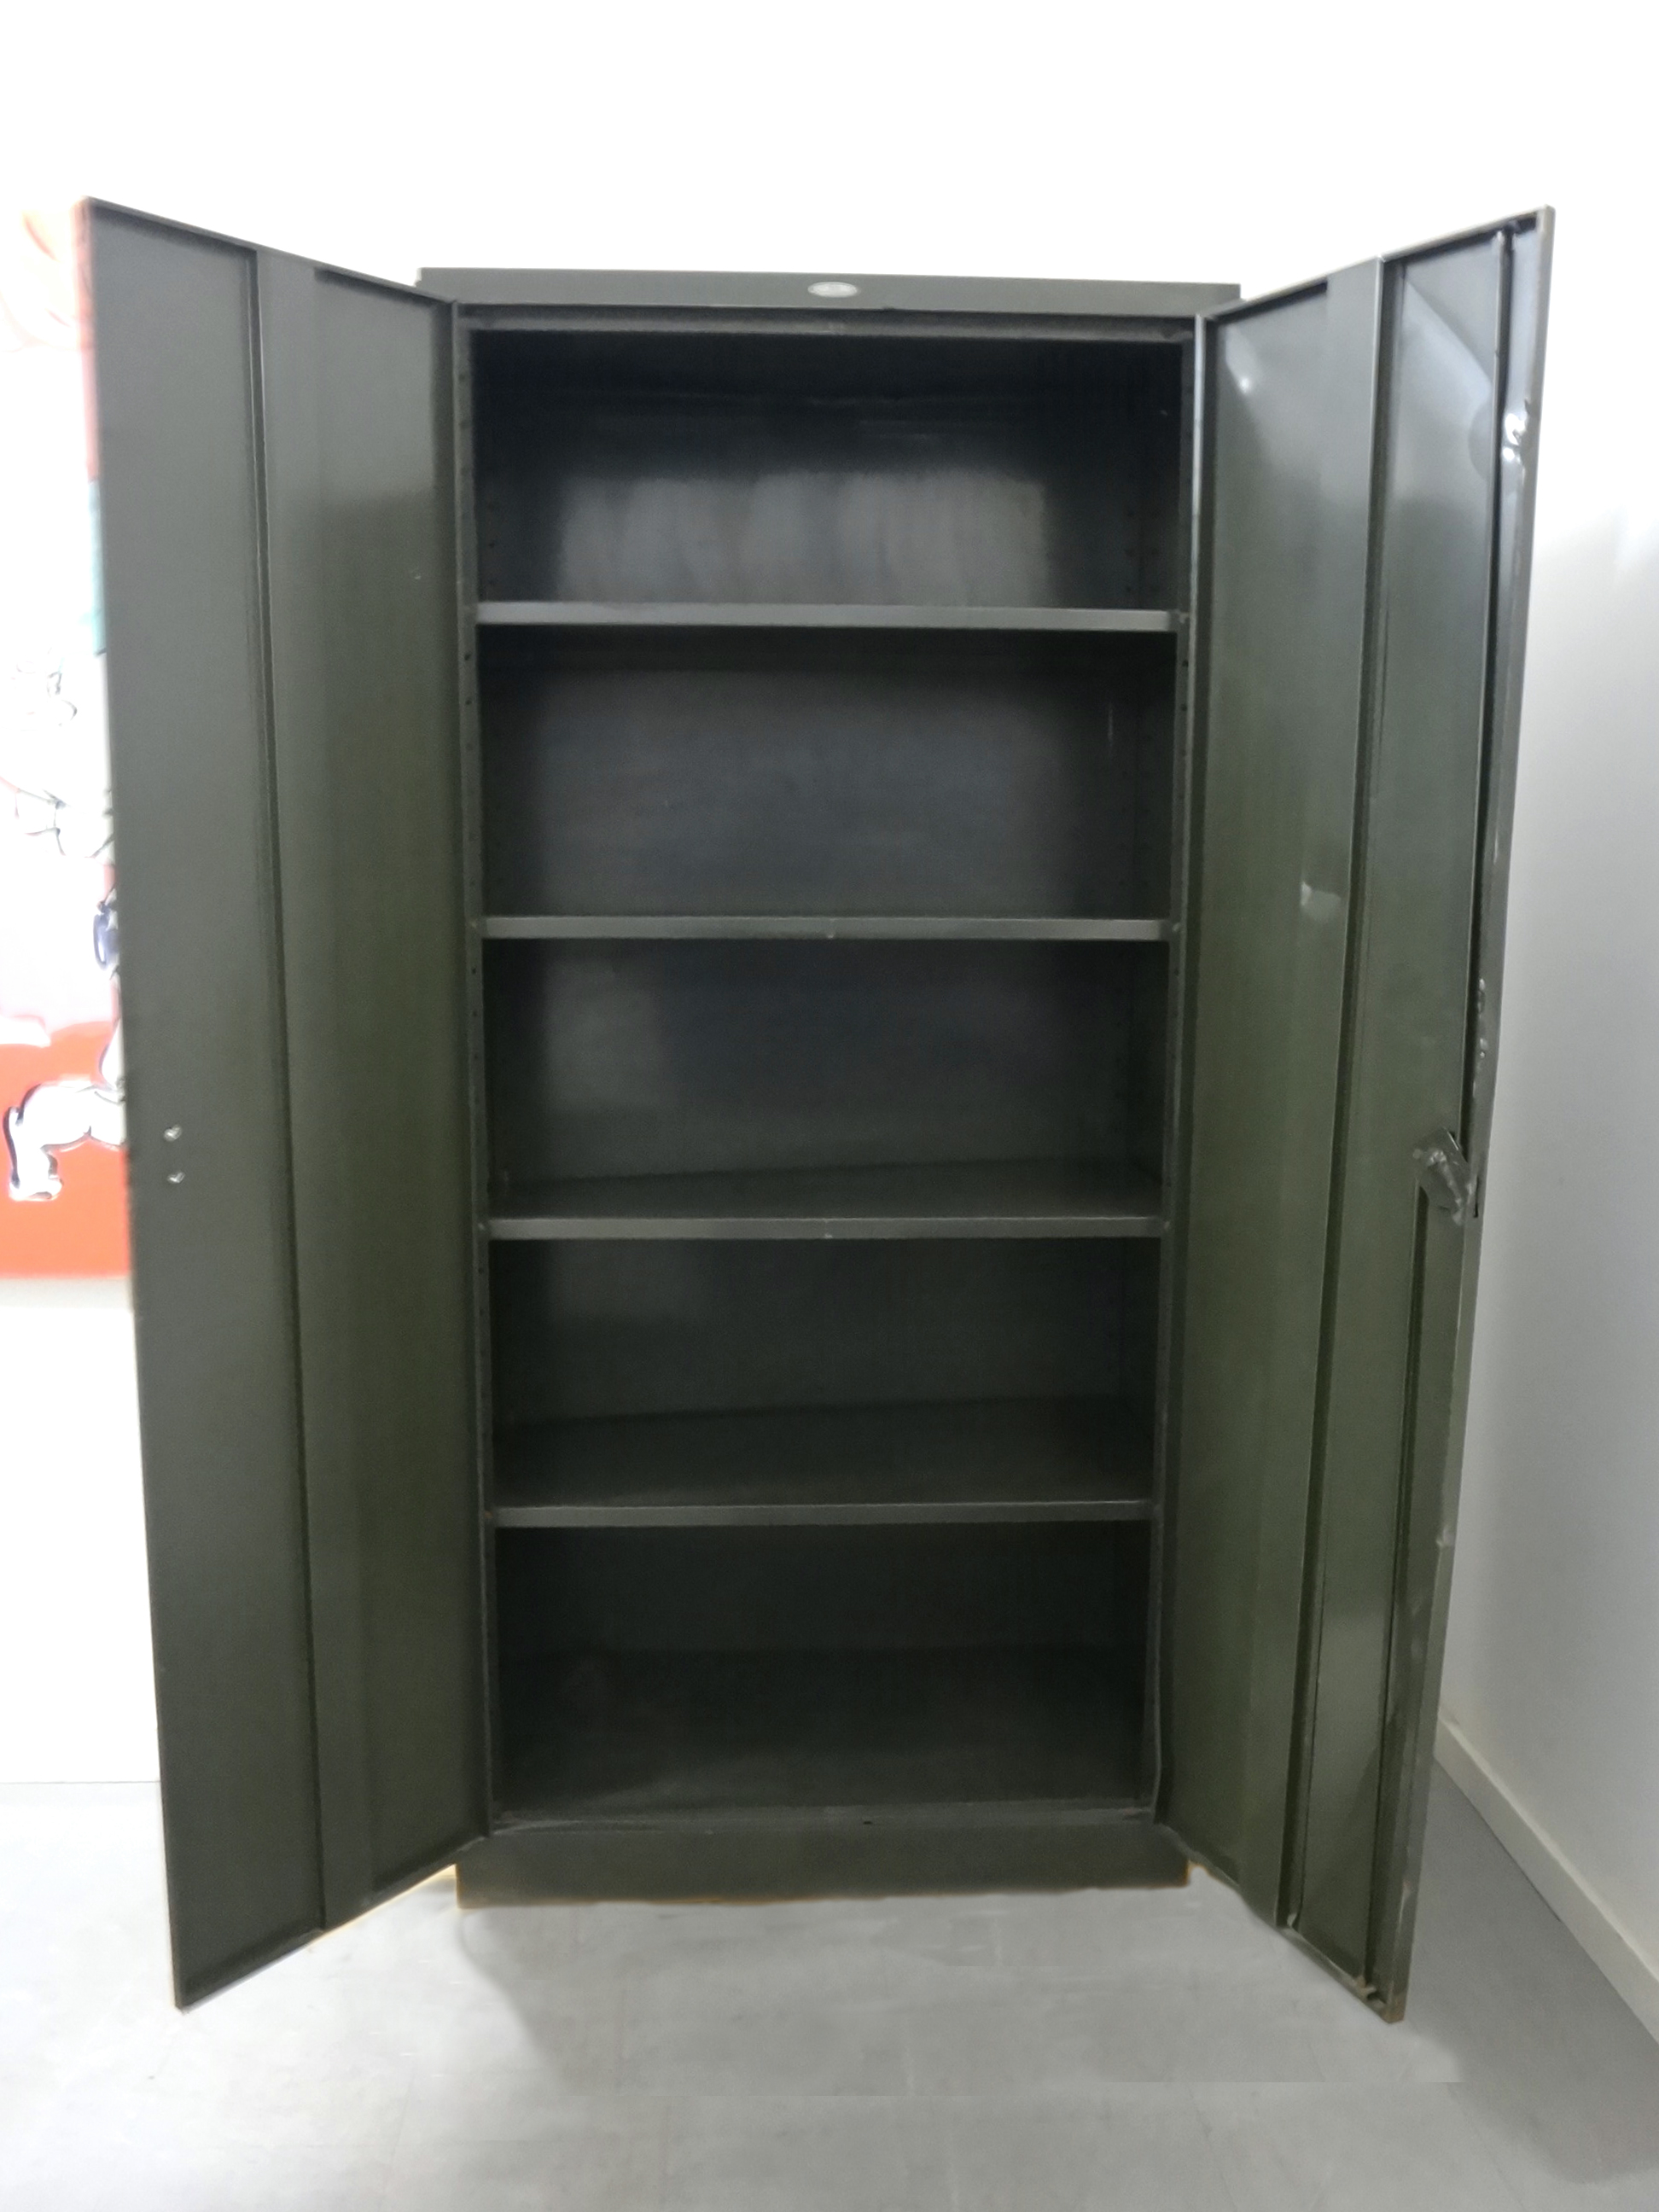 Super-sized Industrial Locker